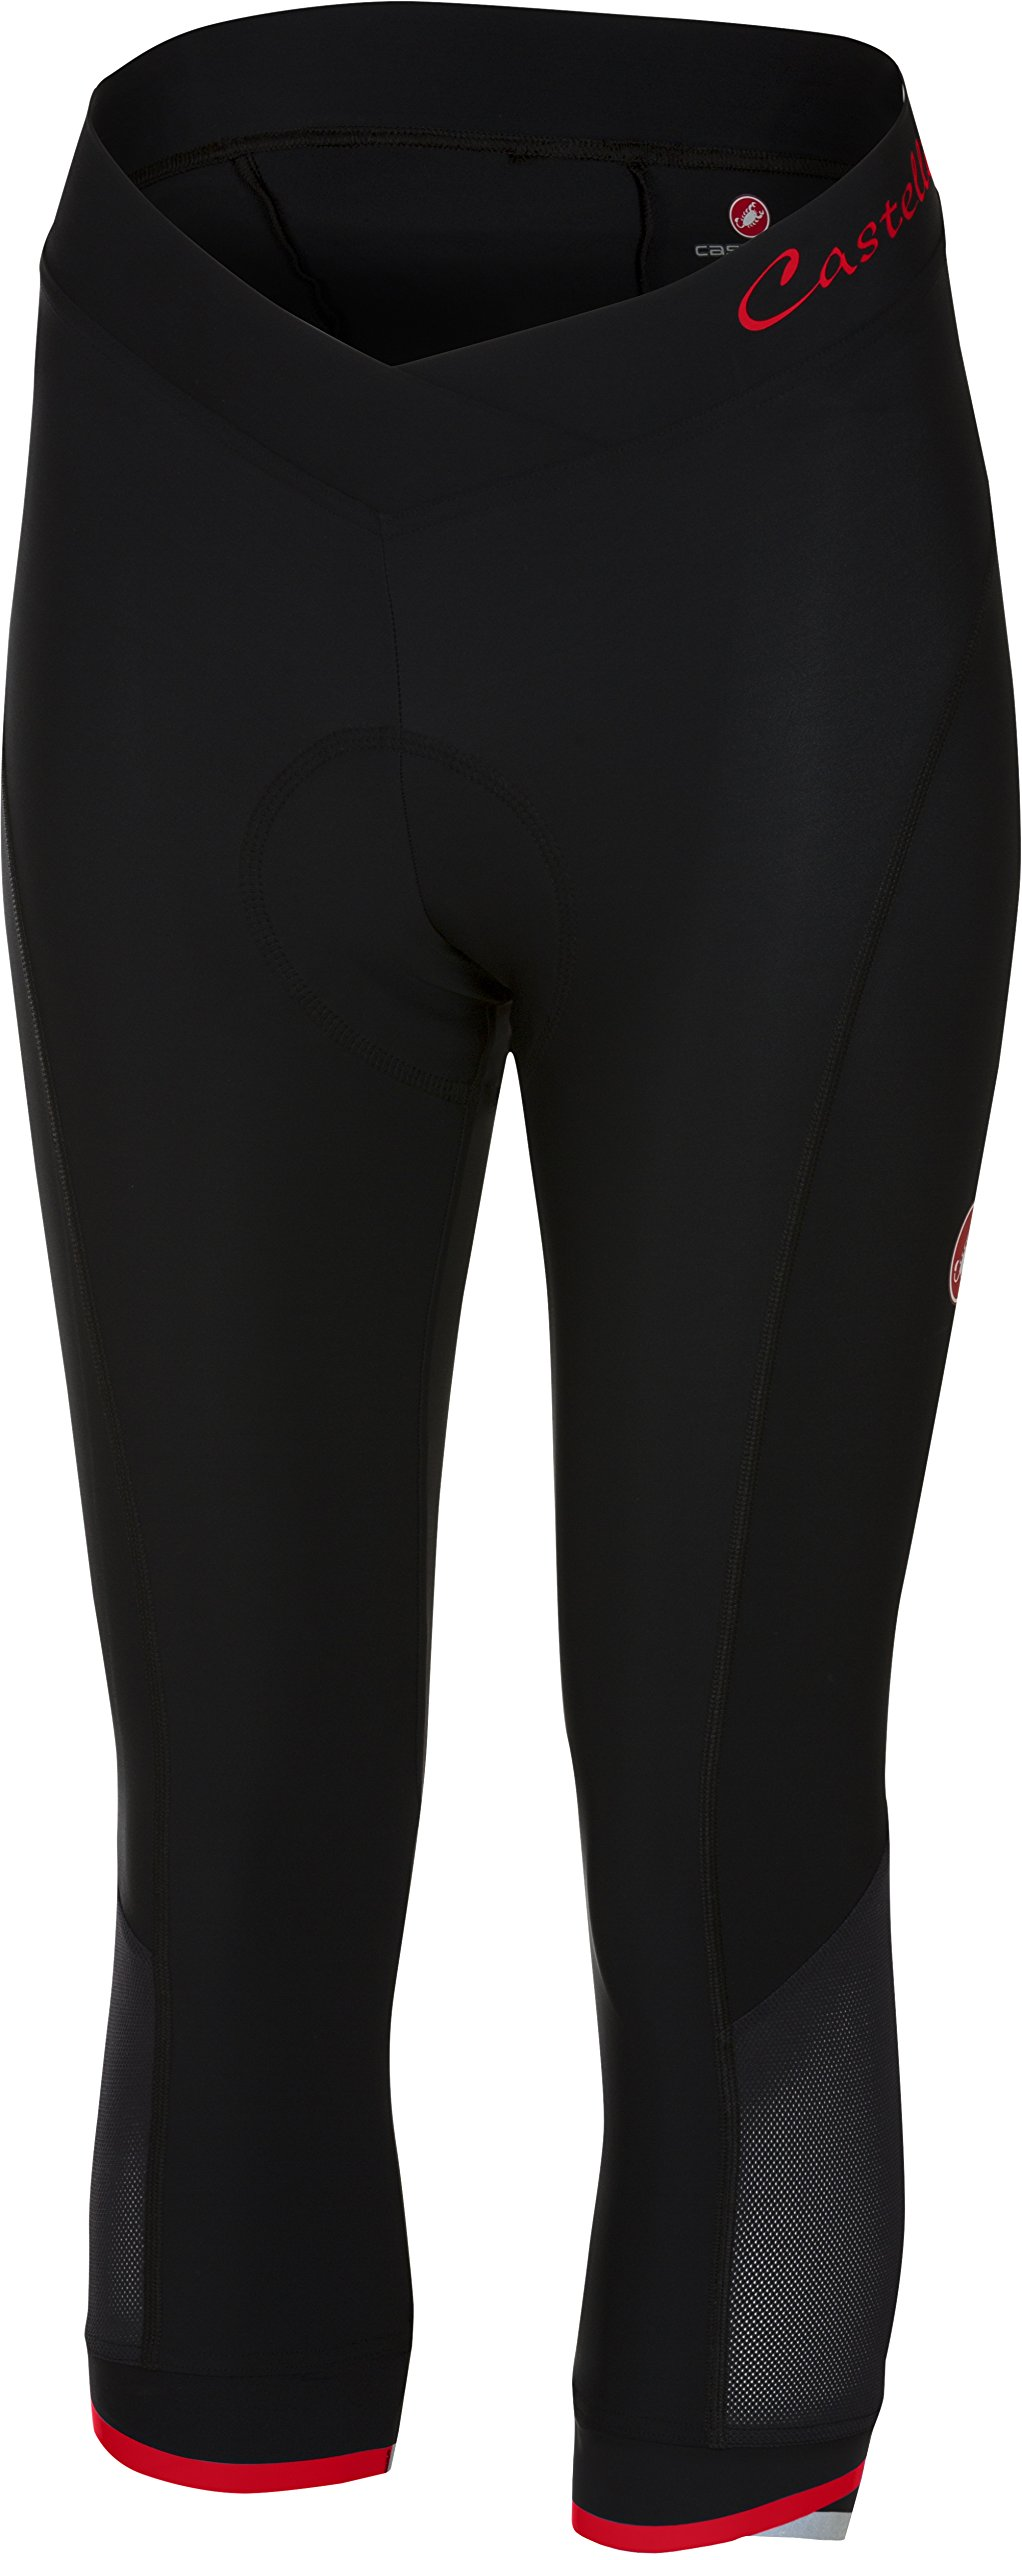 Castelli Vista Knicker - Women's Black/Red, L by Castelli (Image #1)